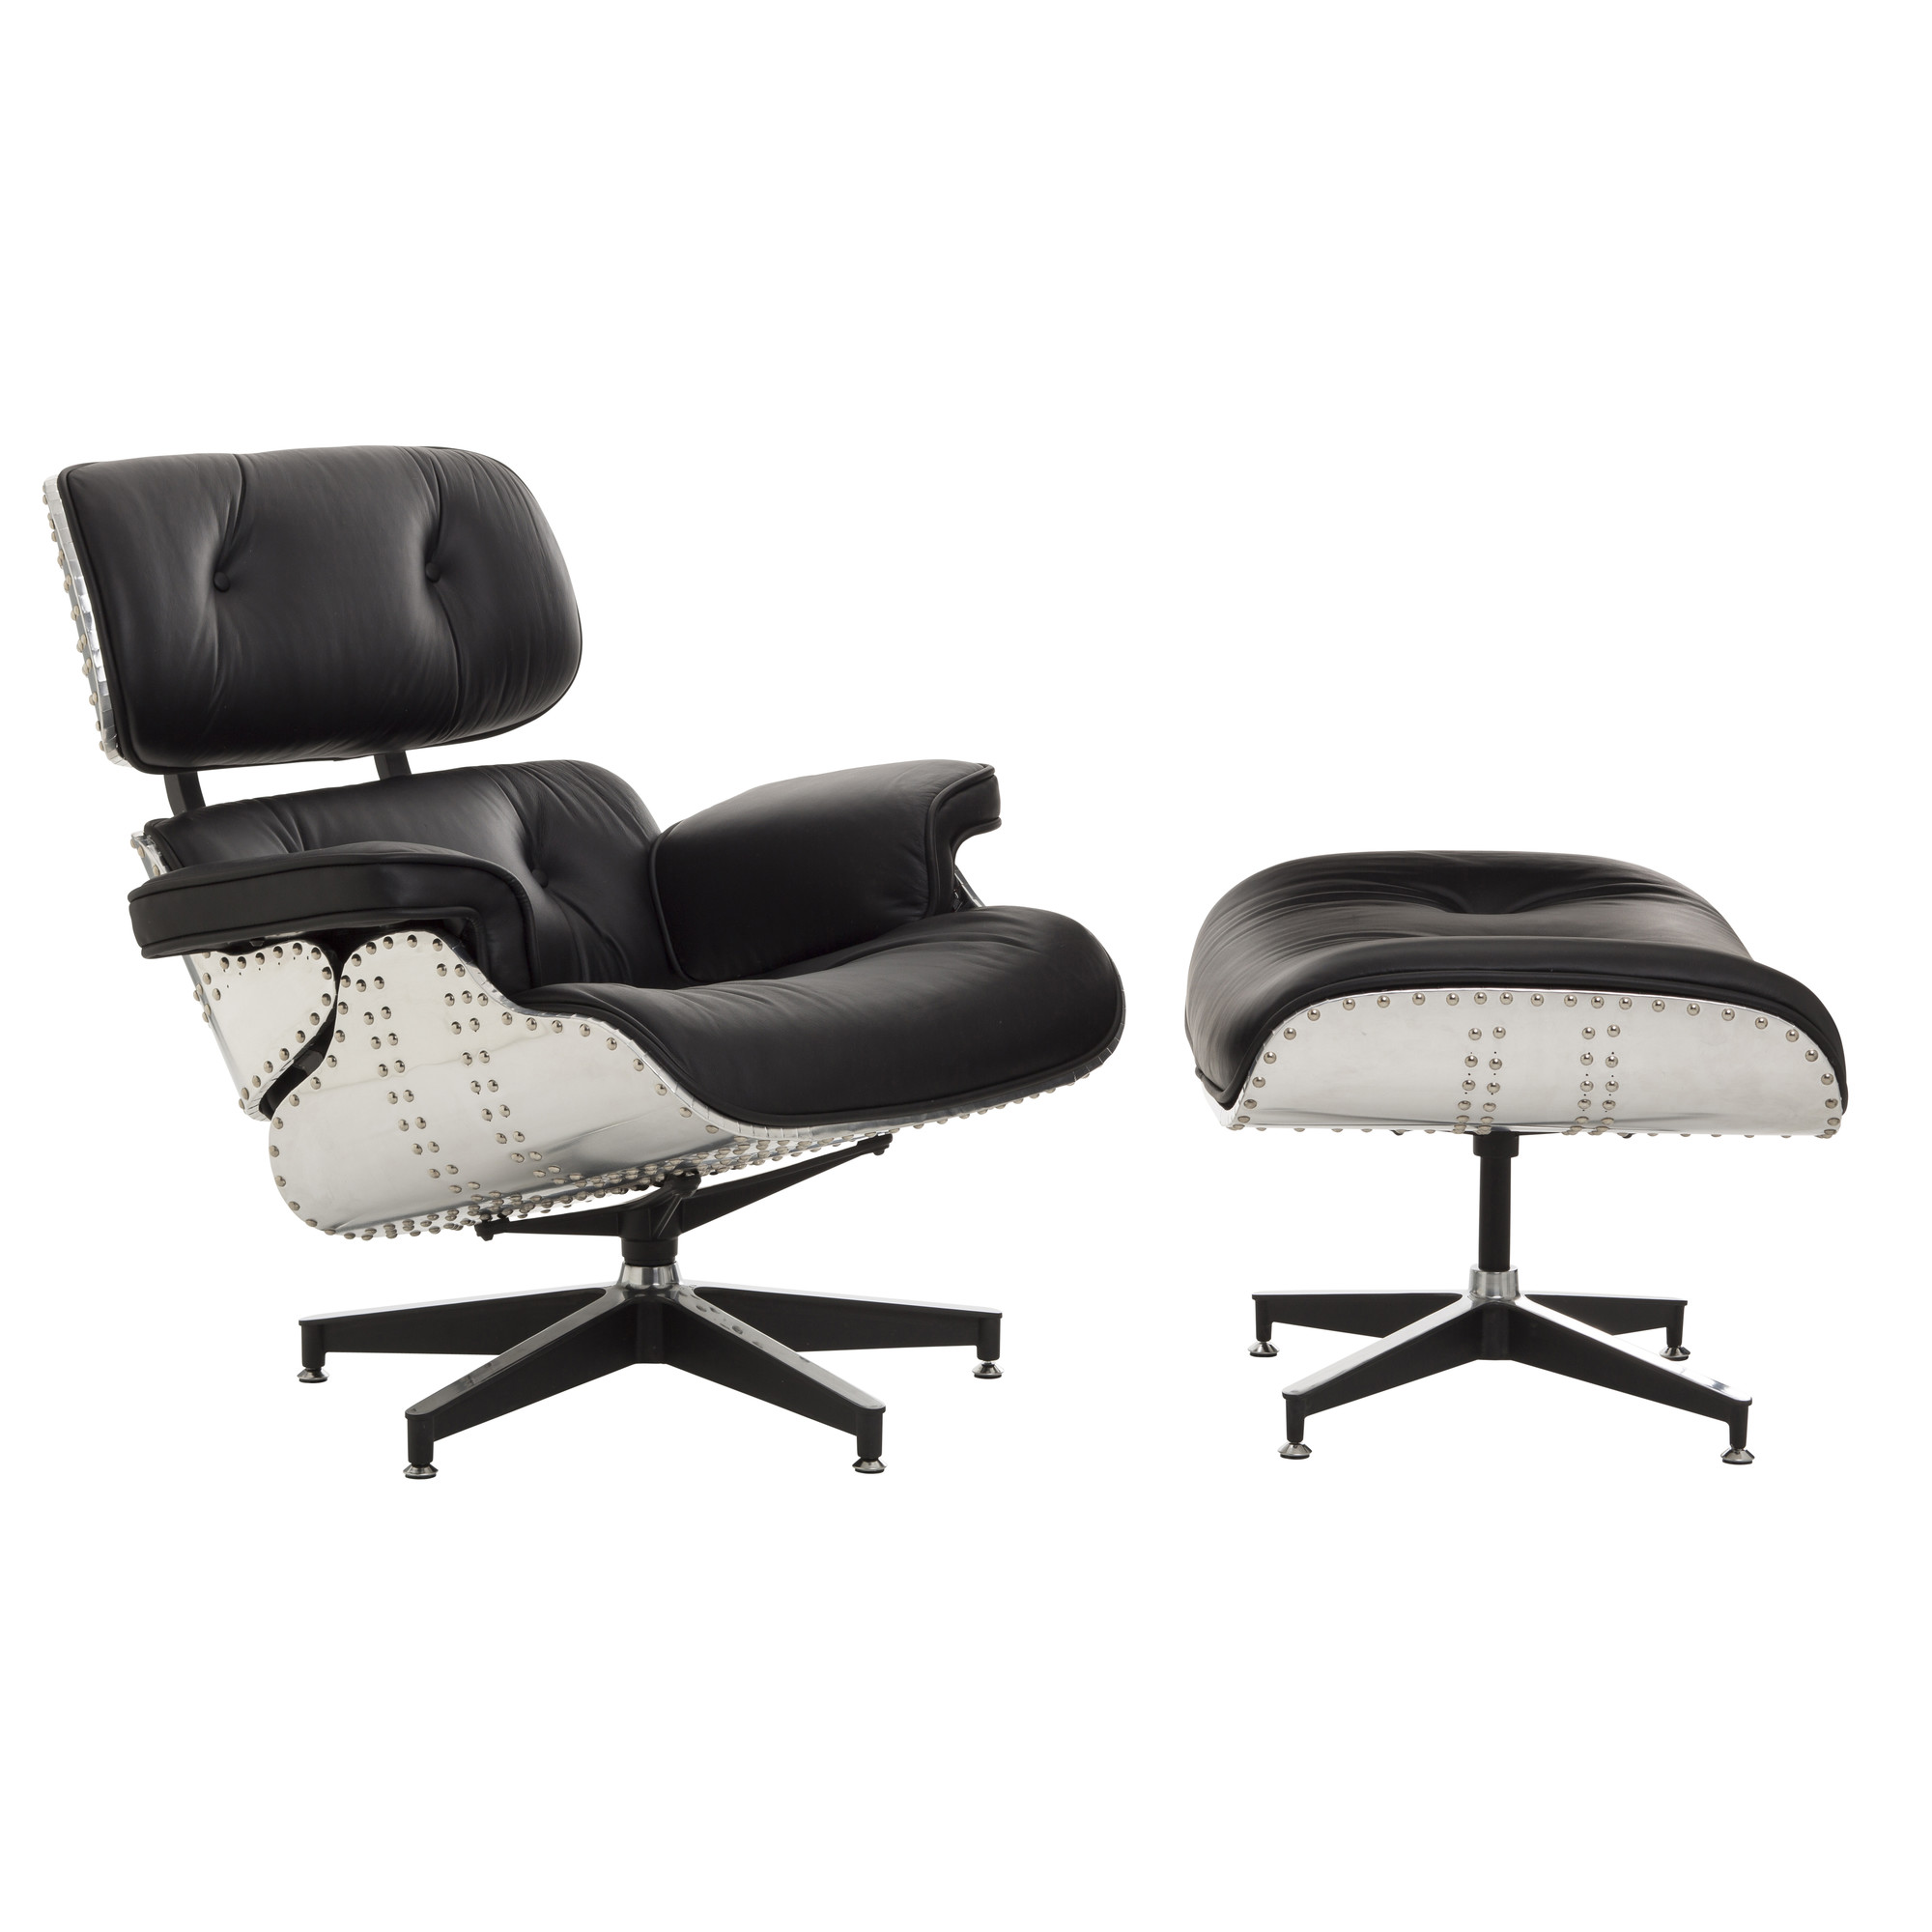 New eames replica aluminium lounge chair ottoman ebay for Eames aluminium chair replica